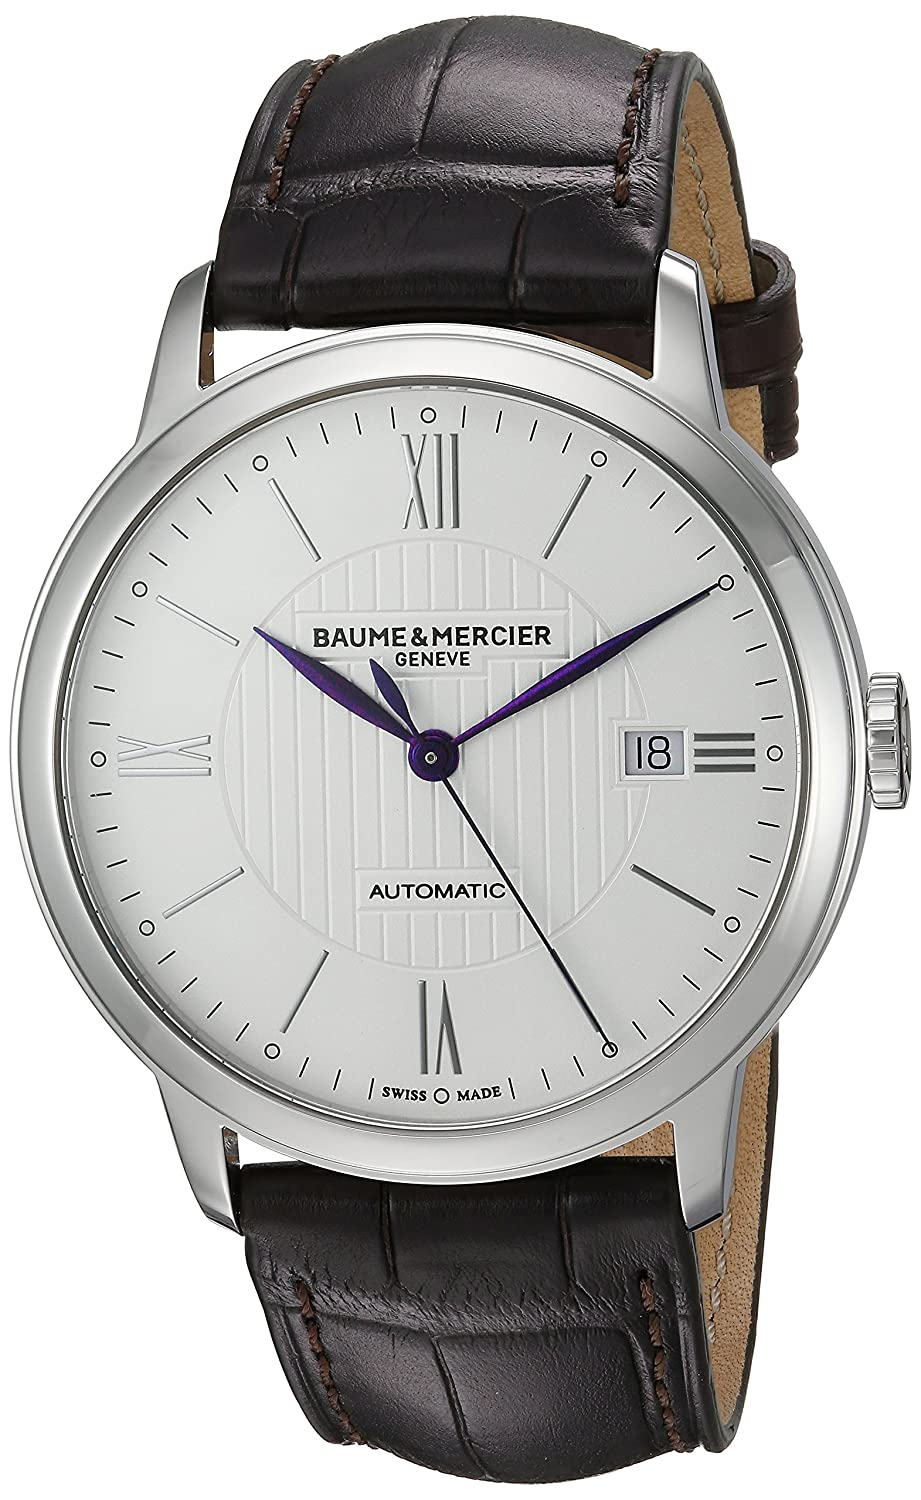 Baume Mercier Men s Stainless Steel Swiss Automatic Watch with Leather Strap, Brown, 21 Model MOA10214